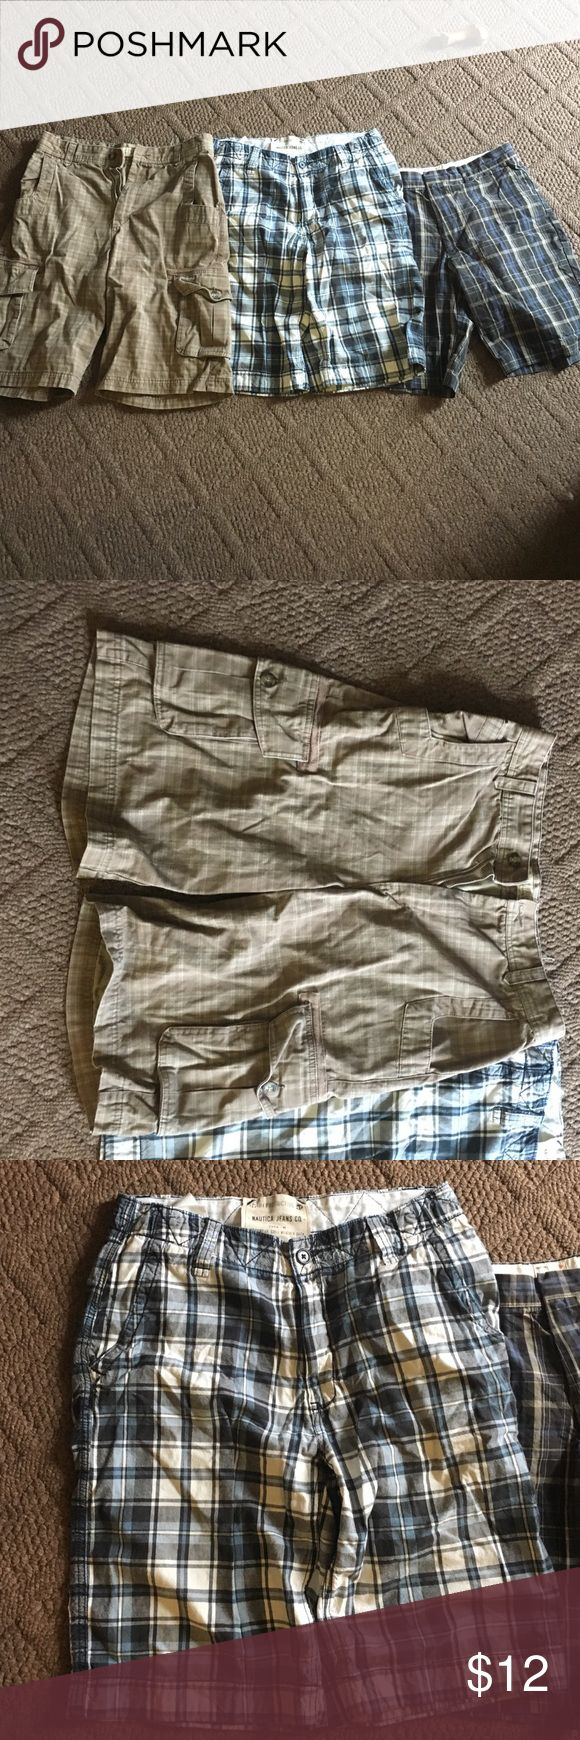 Three Pair of Men's Plaid Shorts From left to right: Cabela's 32W brown plaid, Nautica 32W navy and white plaid, Docker's 32W black and blue plaid. All gently worn. Dockers Shorts Cargo